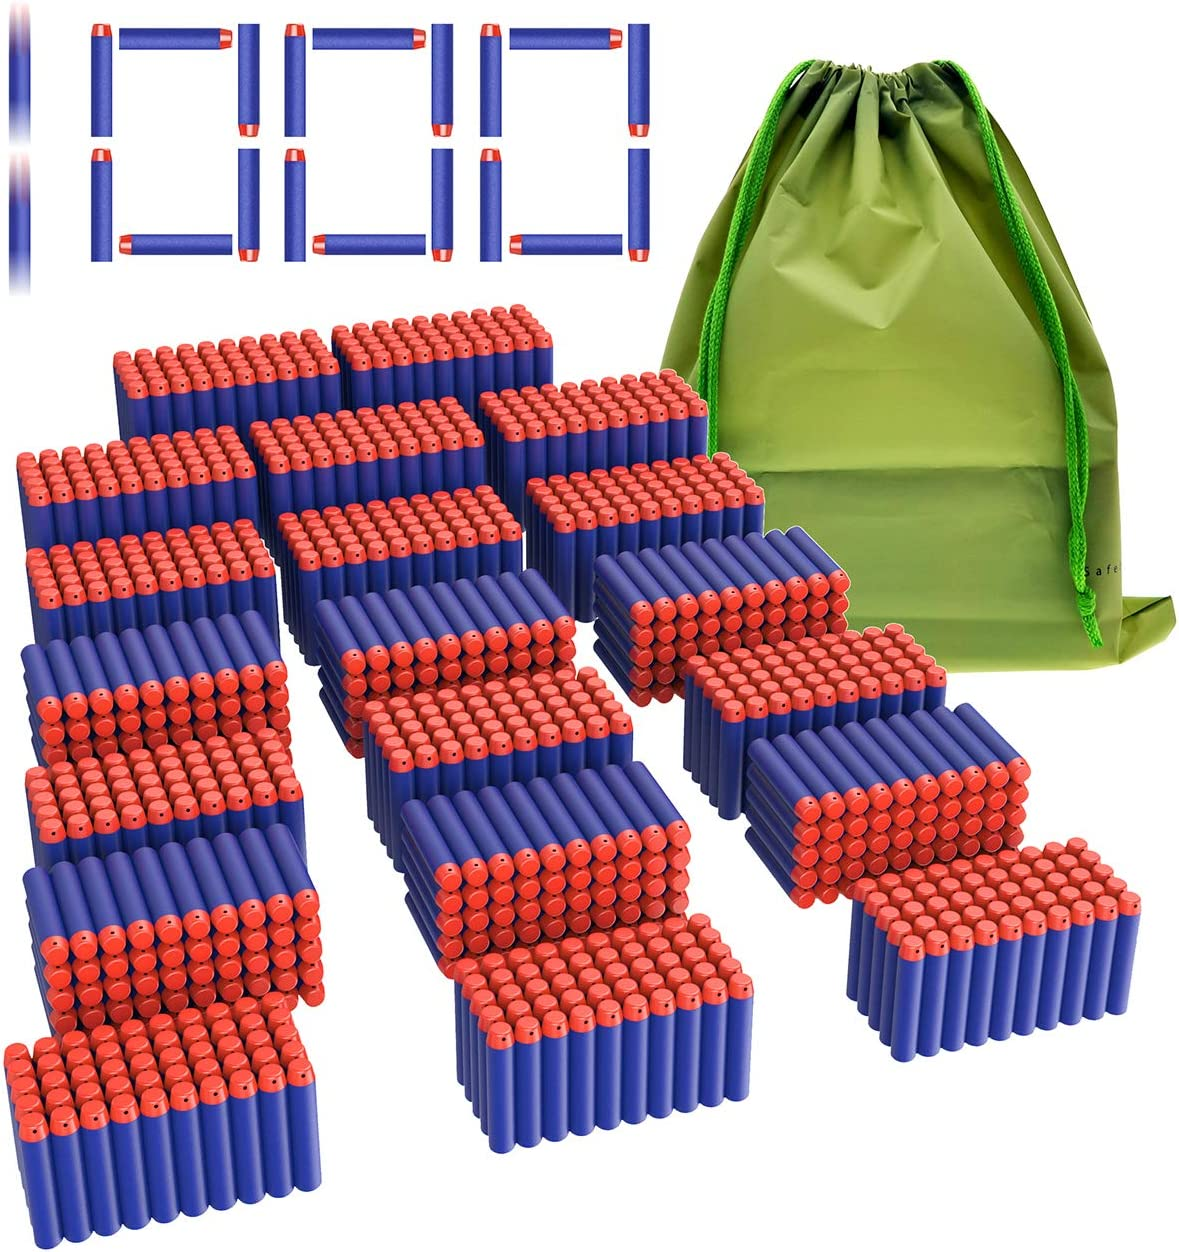 Coodoo Compatible Darts 1000 PCS Refill NEW Nerf Bullets Popular overseas N- Pack for